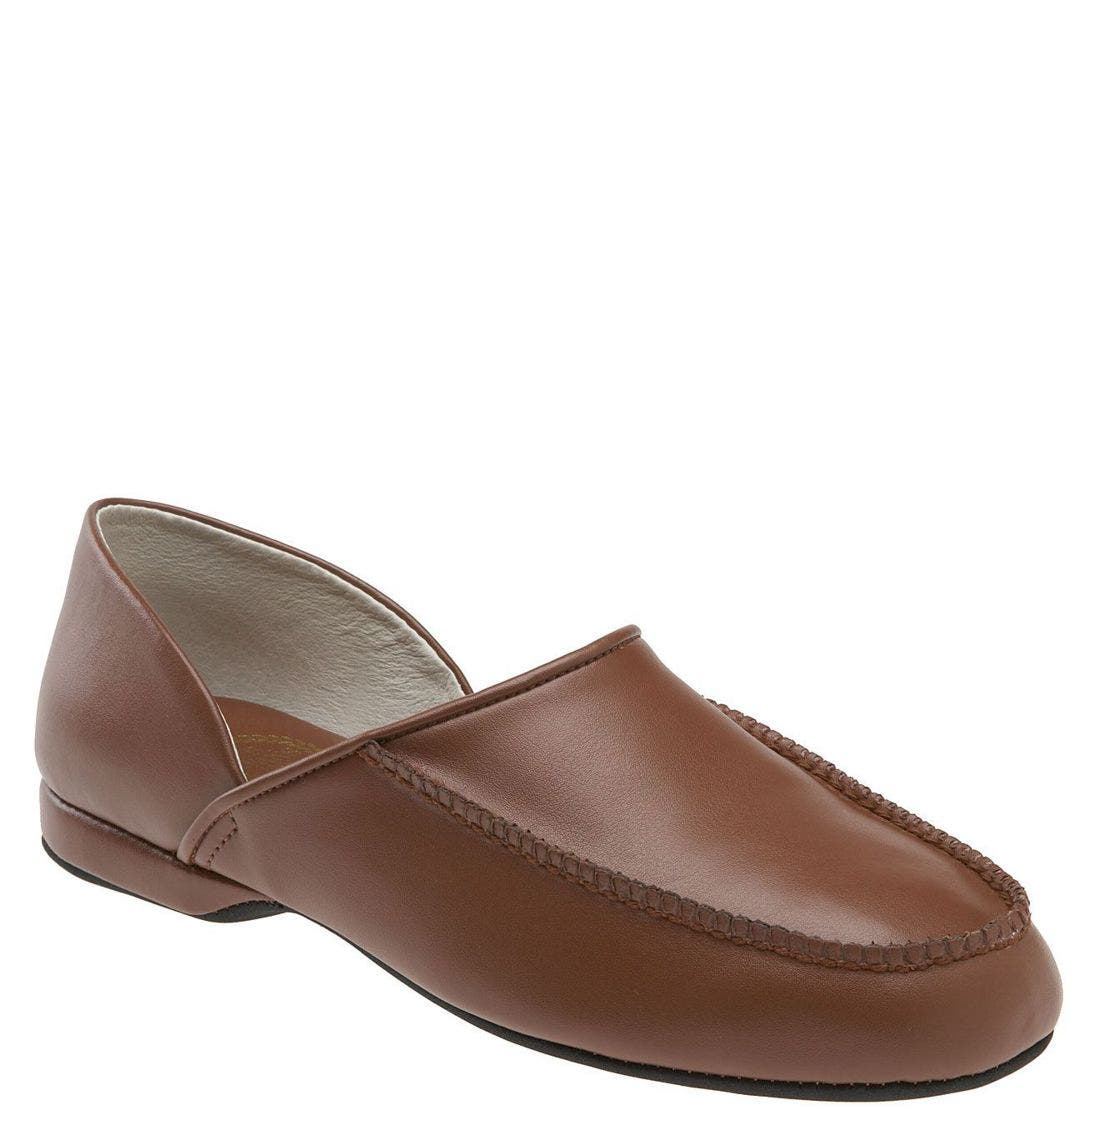 Main Image - L.B. Evans 'Chicopee®' Slipper (Online Only)